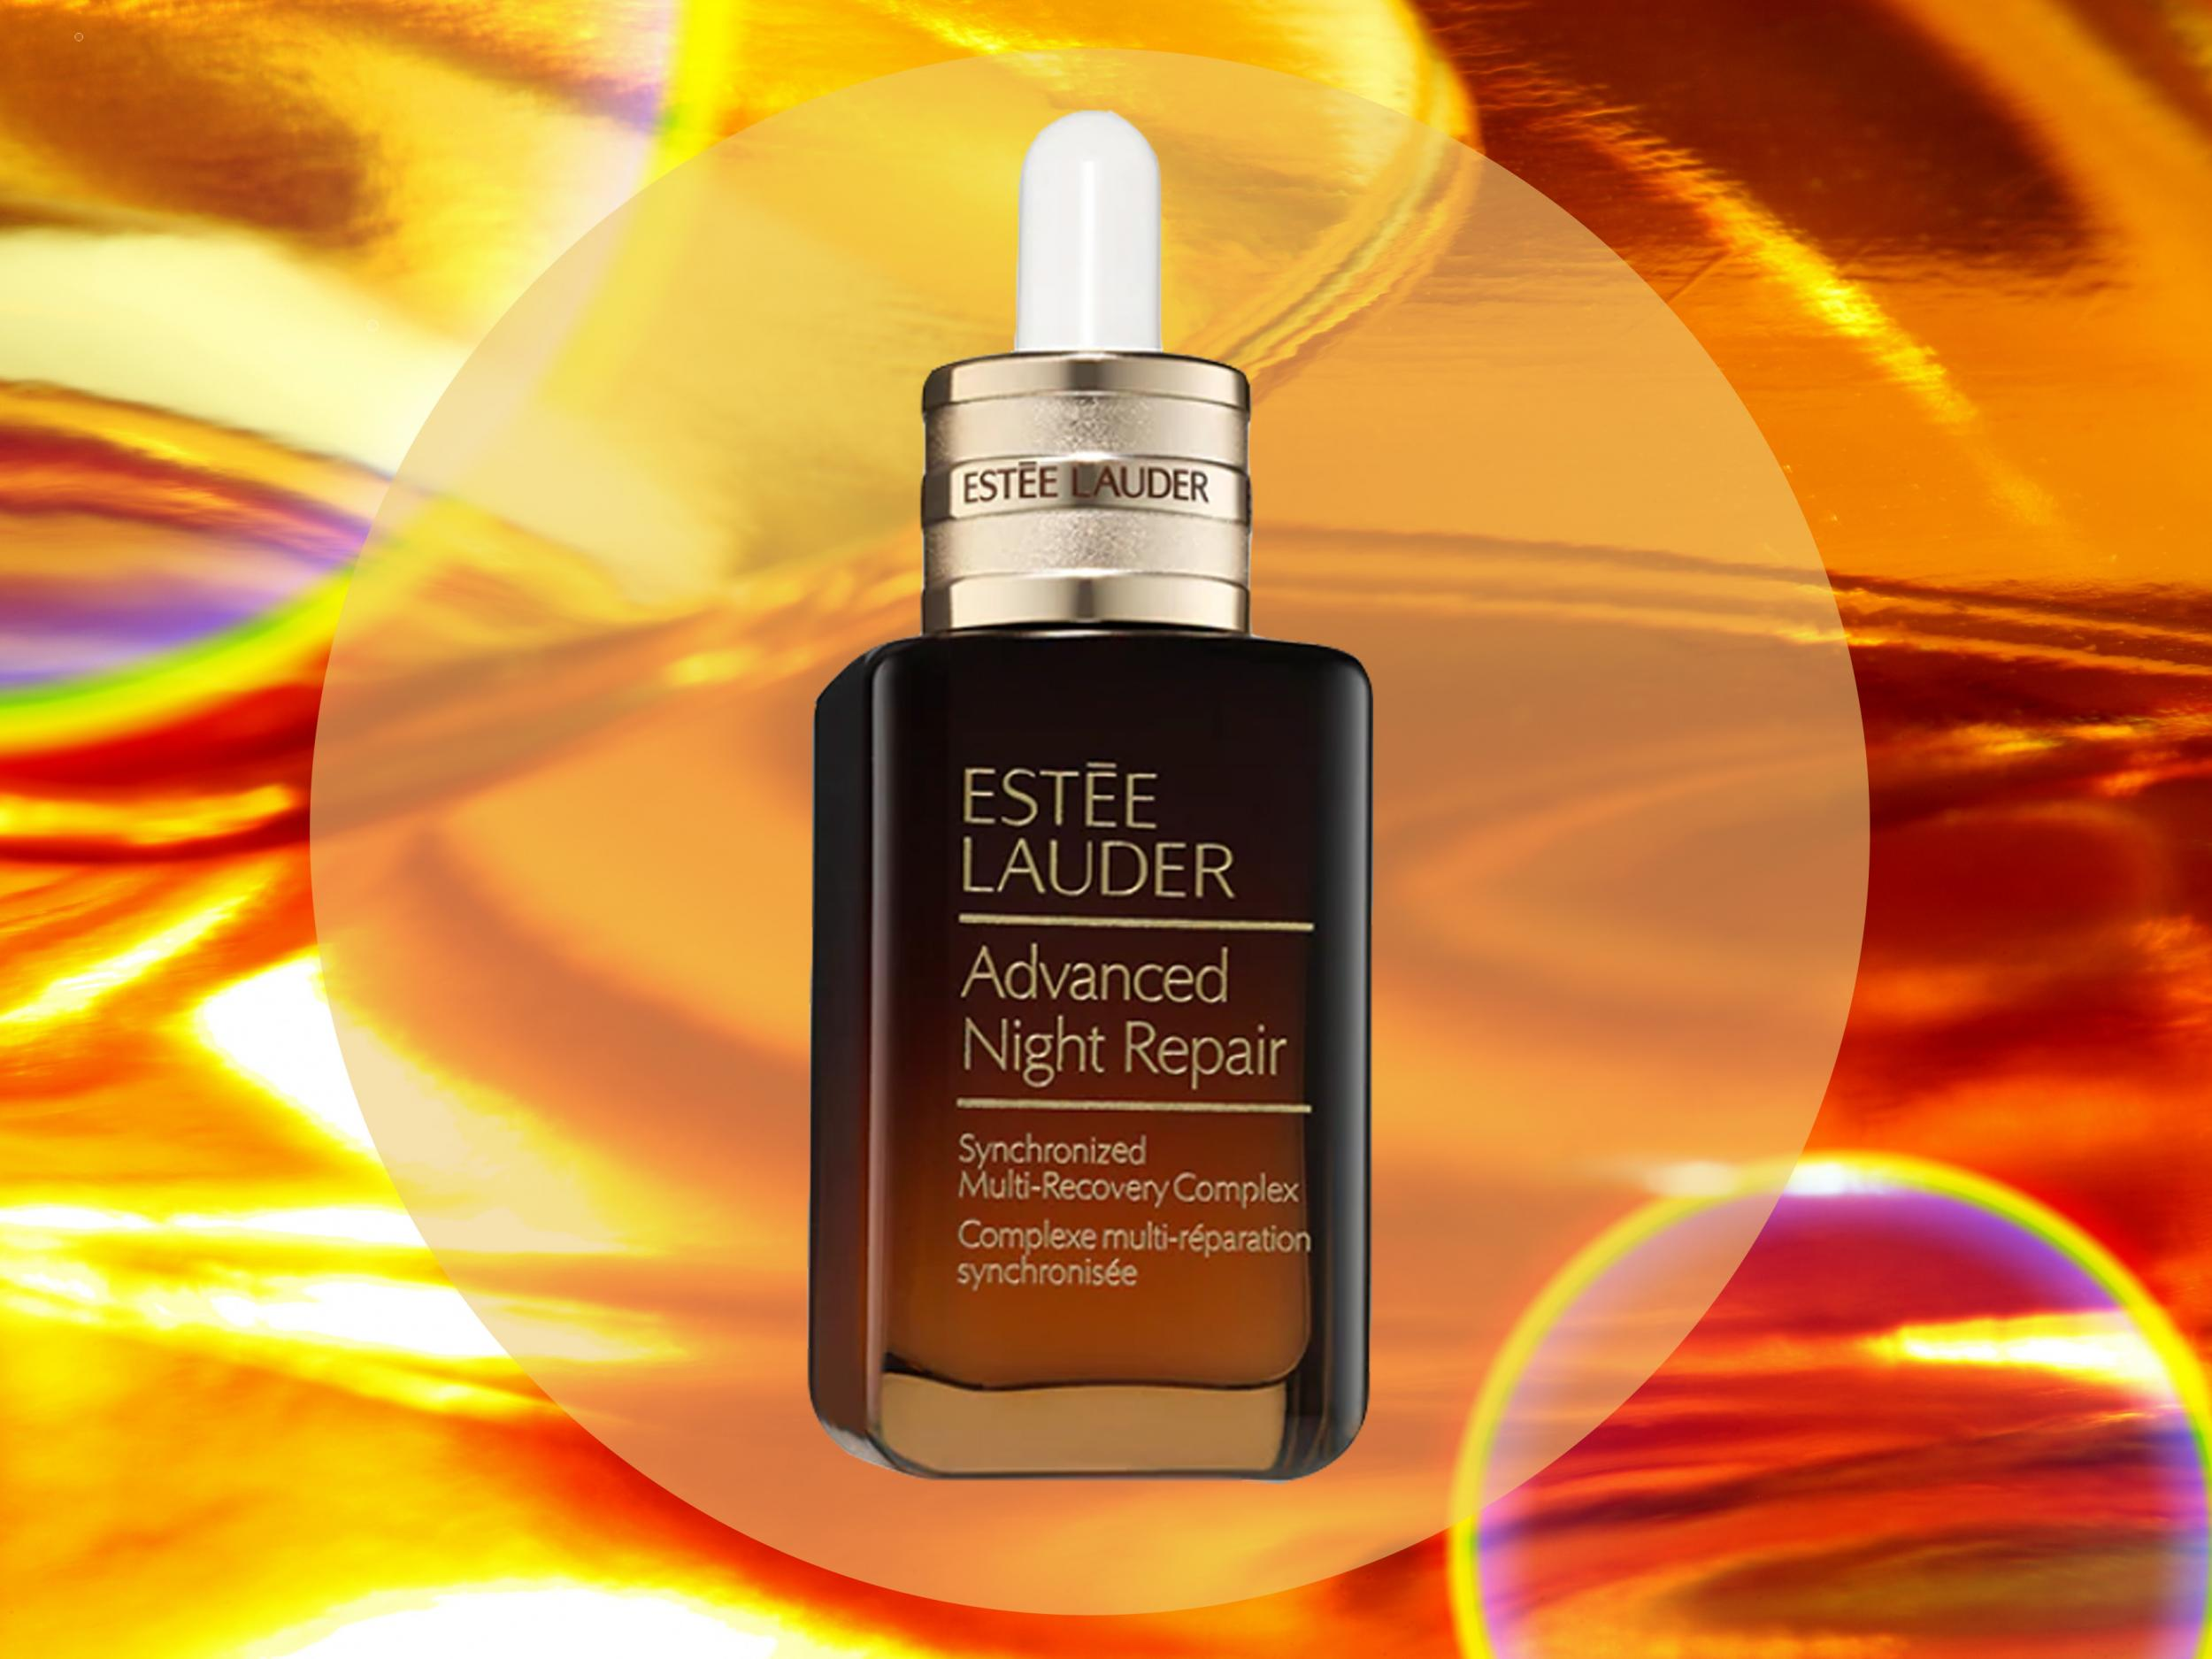 Estee Lauder Advanced Night Repair Has The Newly Formulated Serum Changed We Find Out The Independent